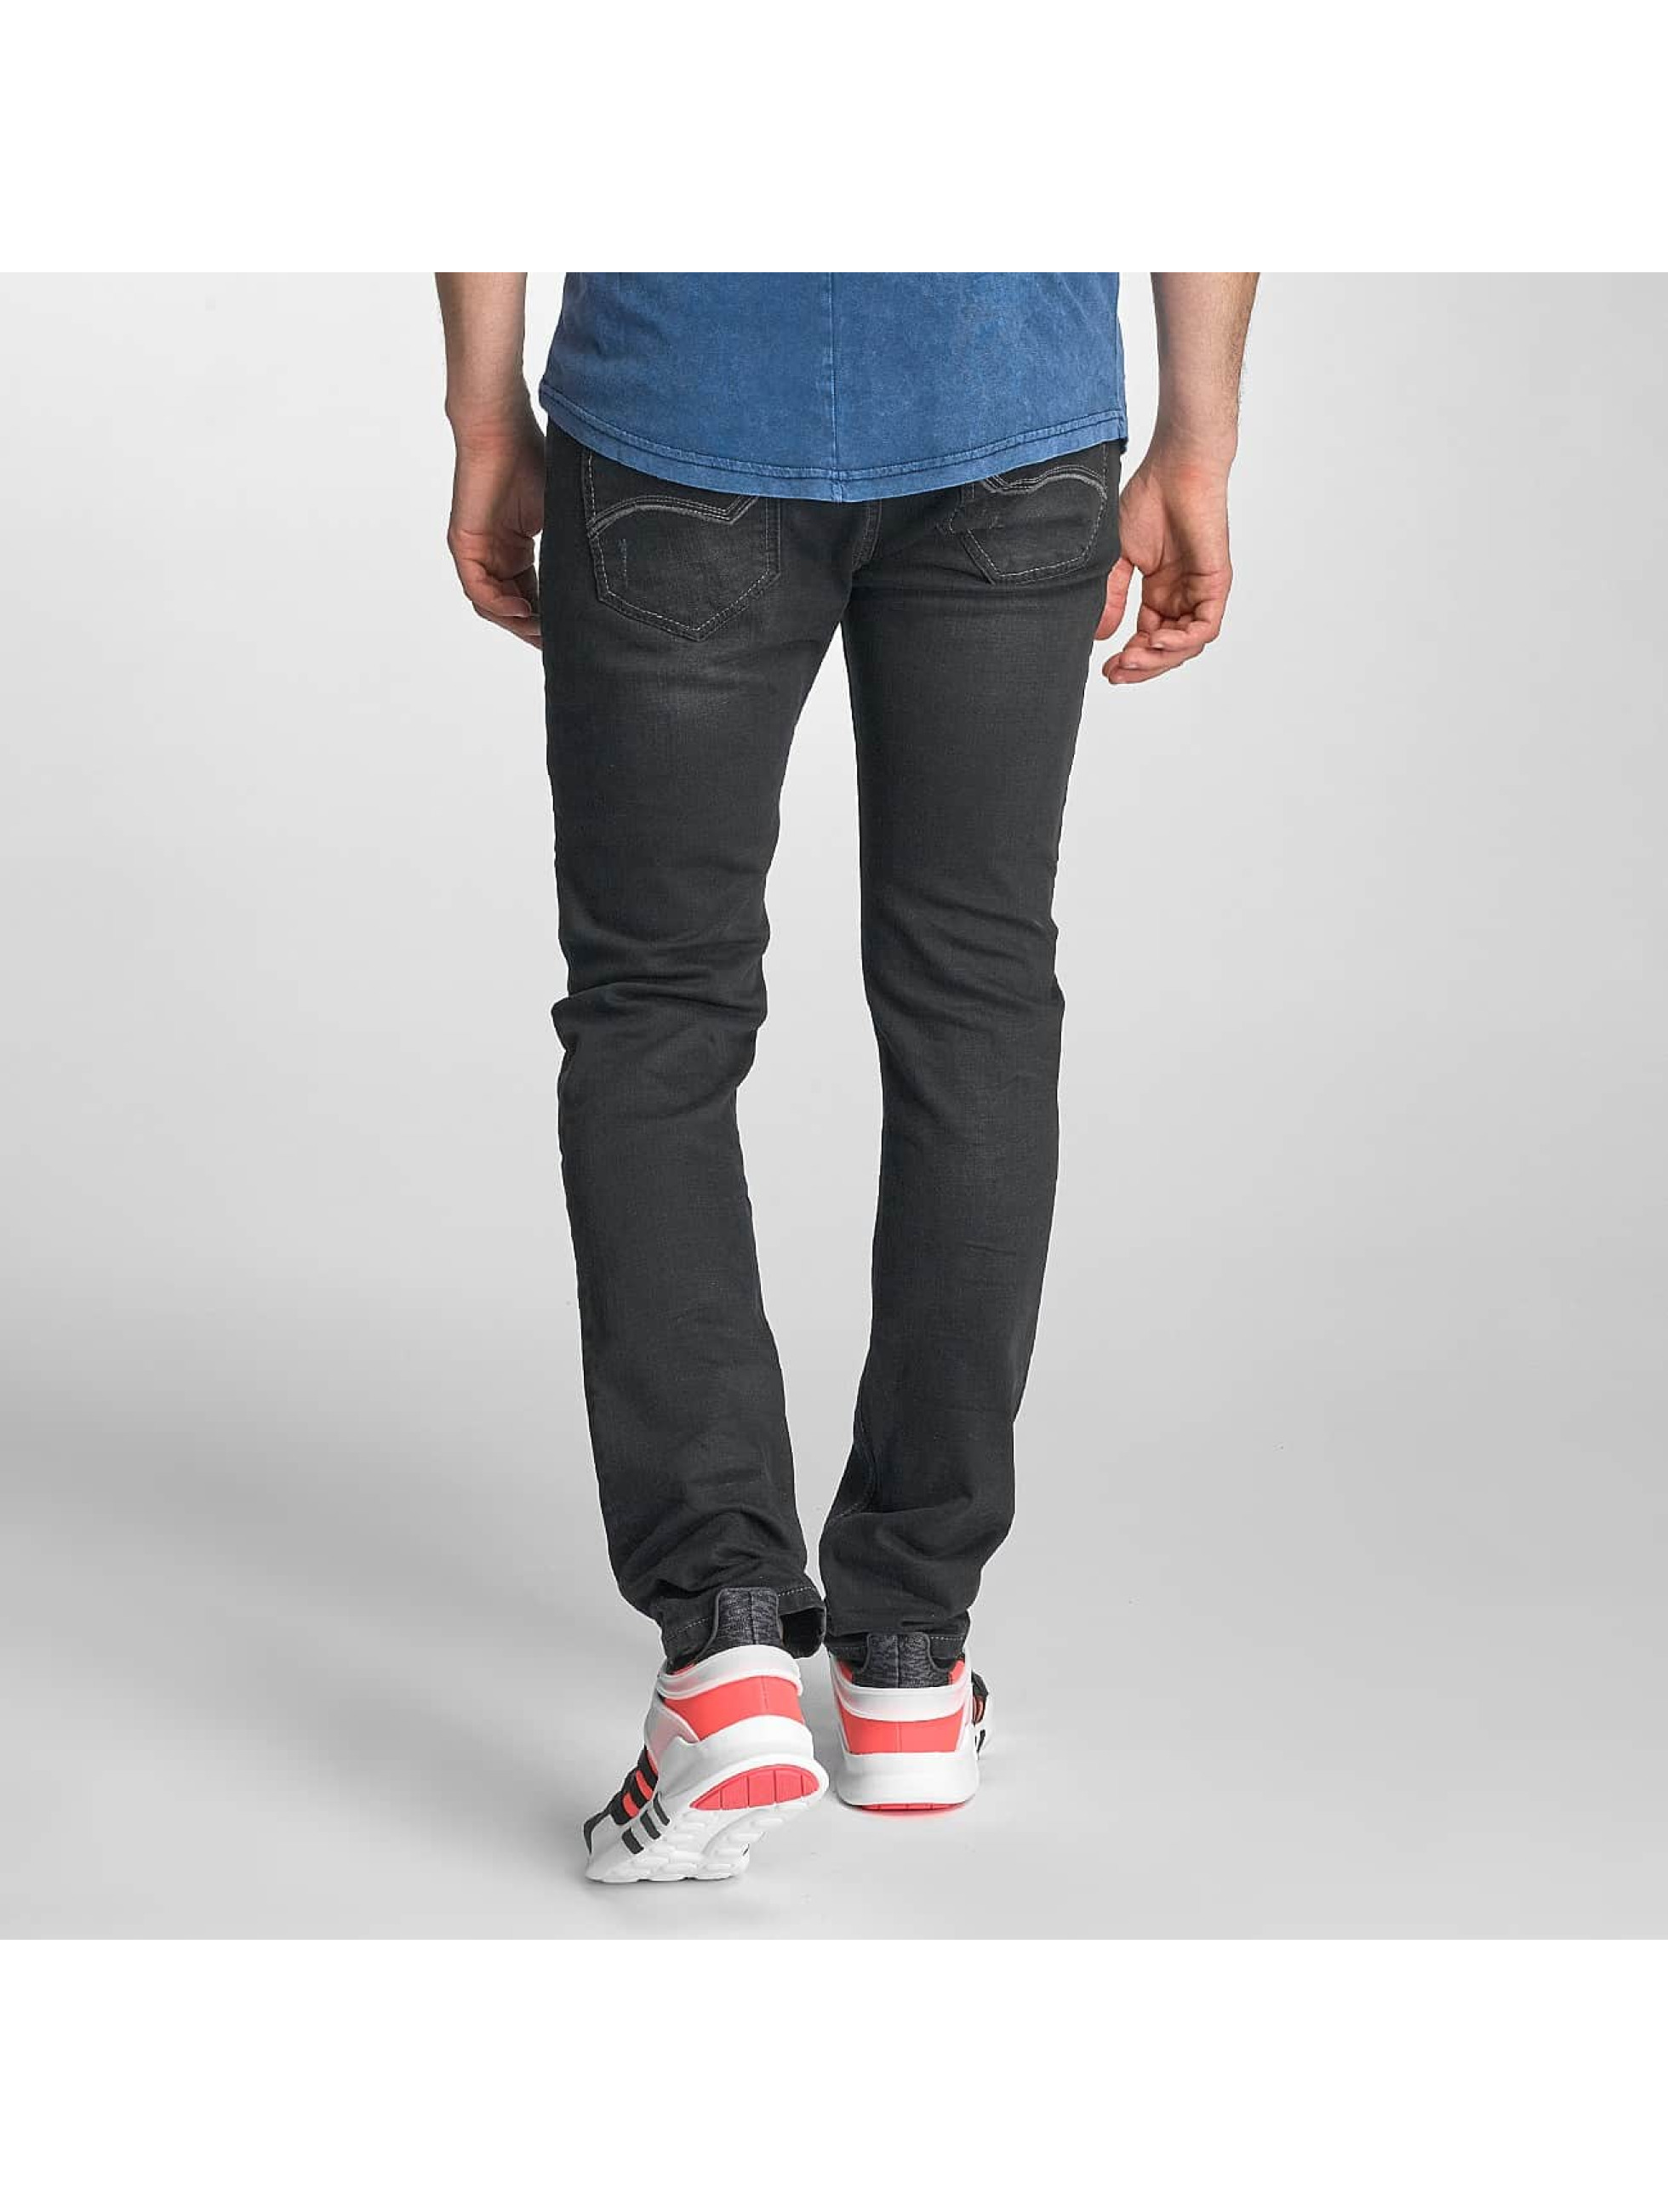 Red Bridge Slim Fit Jeans Baku black